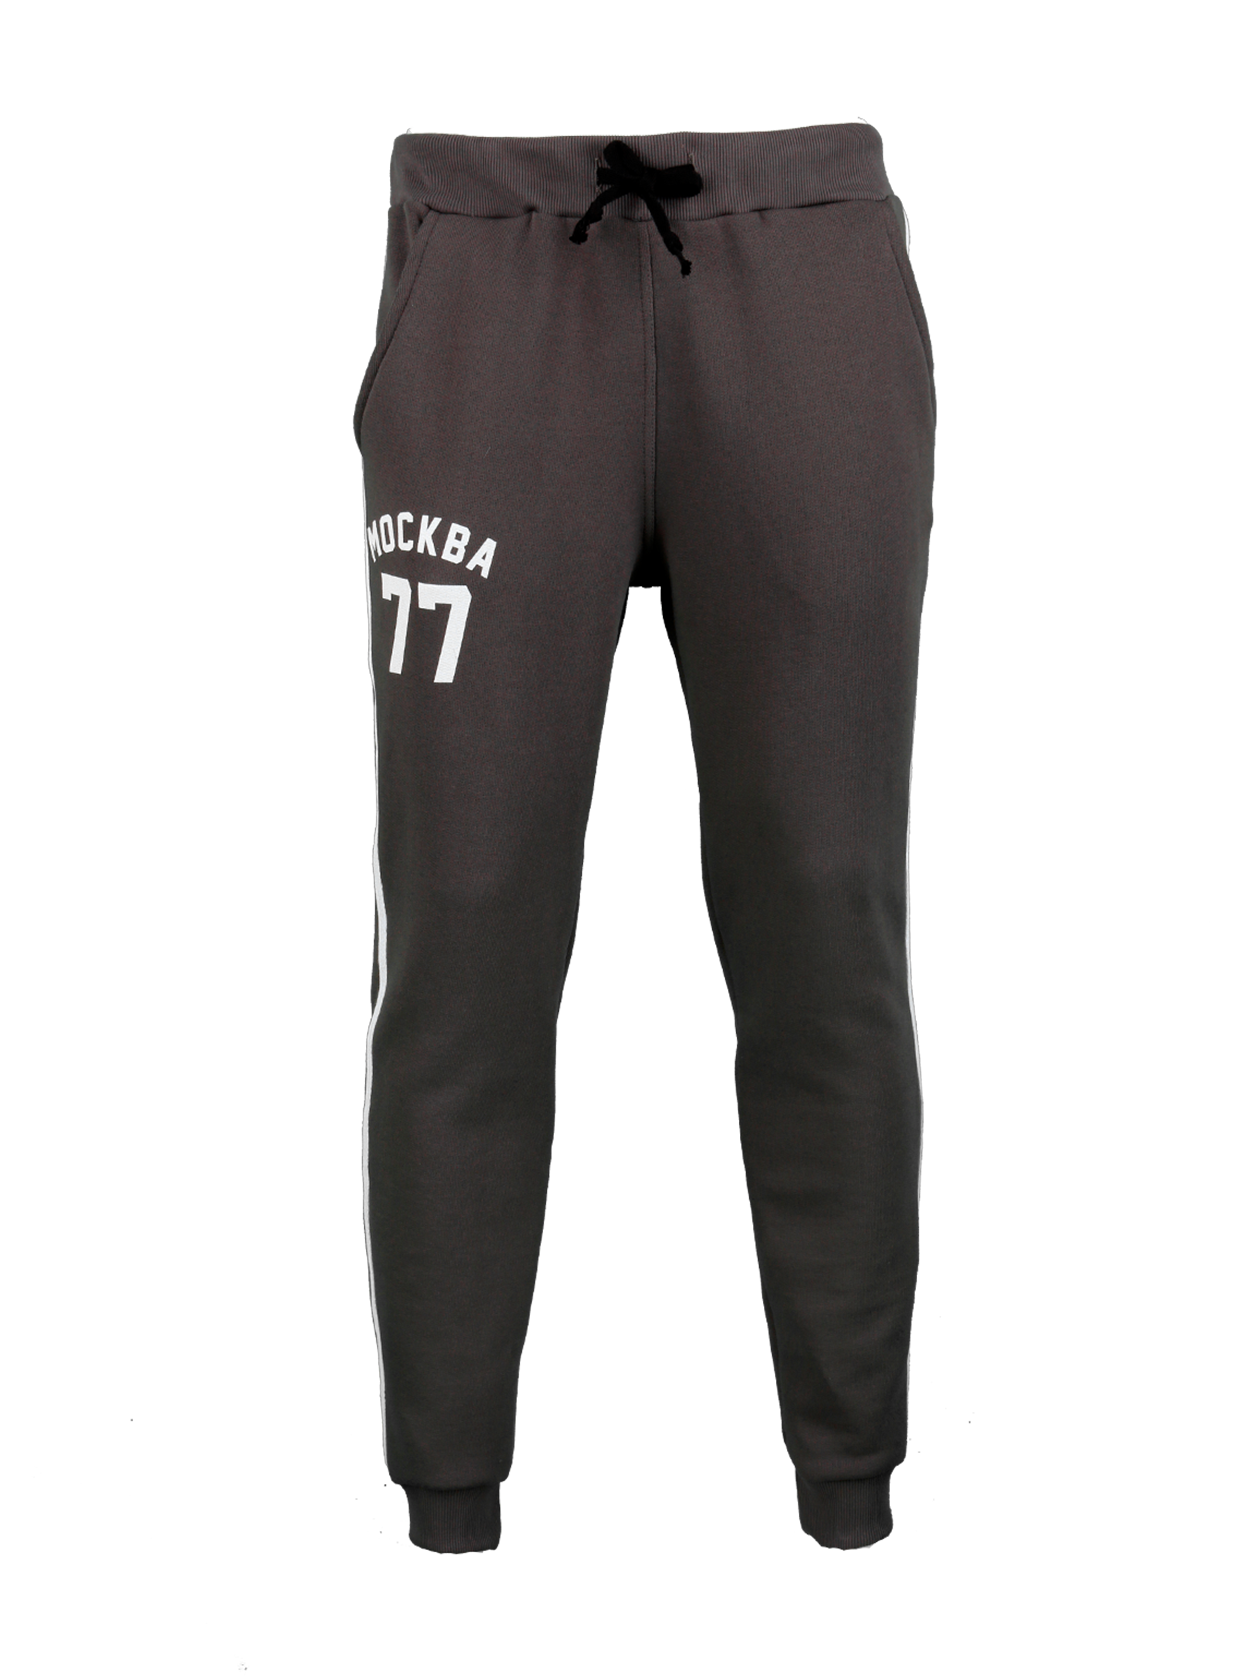 Mens Trousers Moscow 77Mens sweatpants by Black Star Wear. Straight fit, side pockets, elastic band on the waiste and ankles. Avaliable in gray with white contrasting lines and Moscow 77 print on the right side. Material: 100% natural cotton.<br><br>size: M<br>color: Grey<br>gender: male